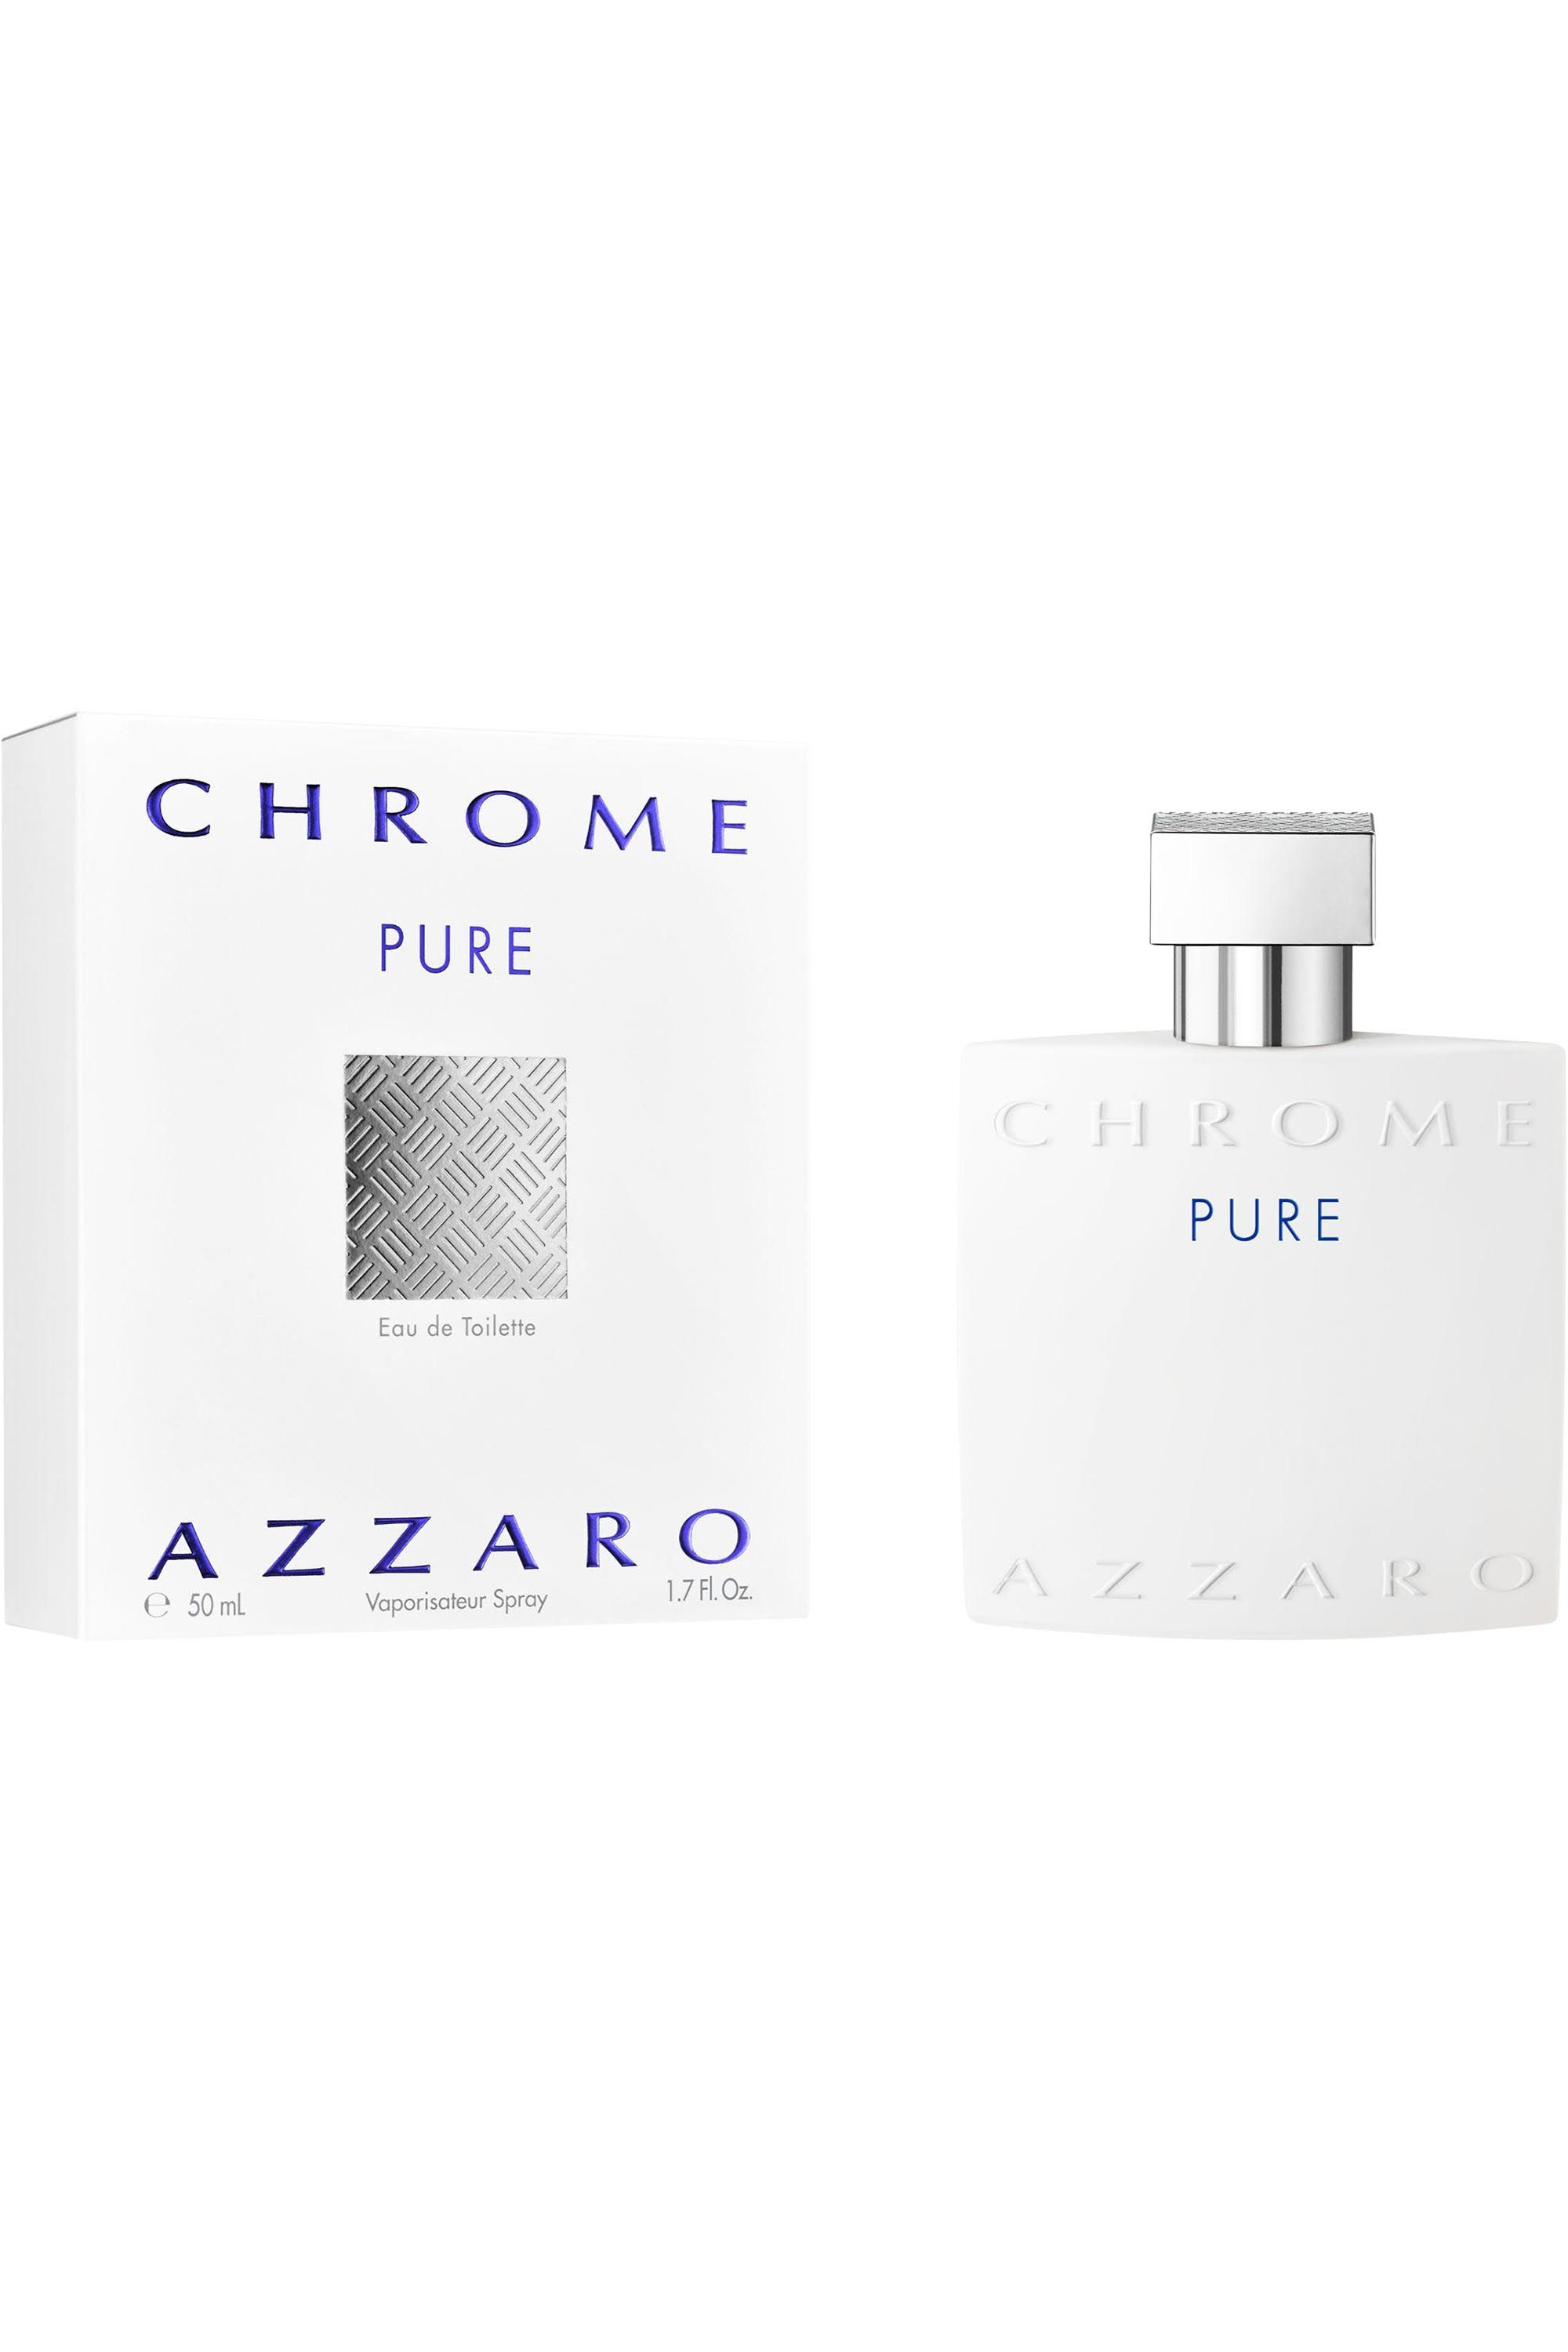 Blissim : Azzaro - Eau de toilette Chrome Pure - Eau de toilette Chrome Pure